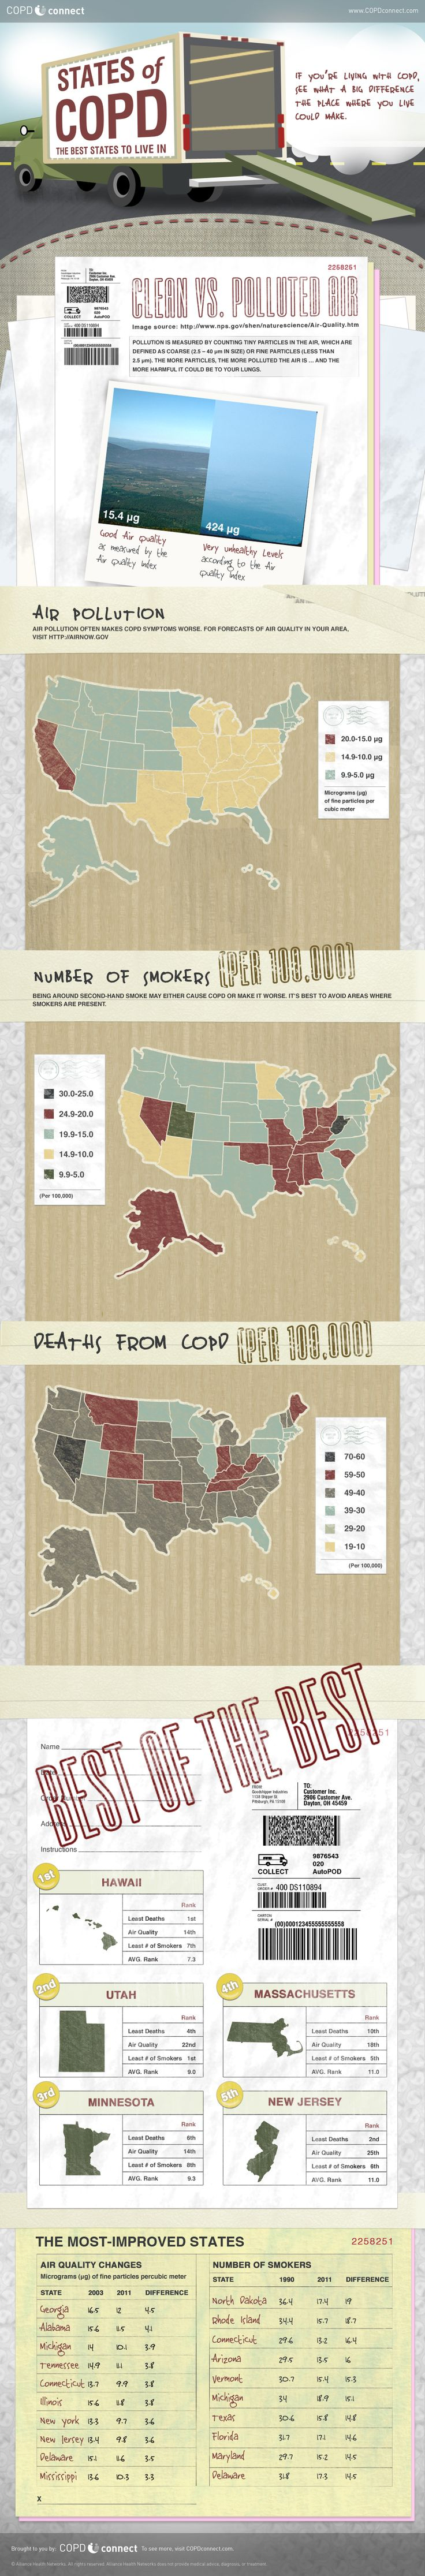 Latest Infographic on COPD. If you have a lung condition, this might help you know where to live.Health Issues, Latest Infographic, Health Infographic